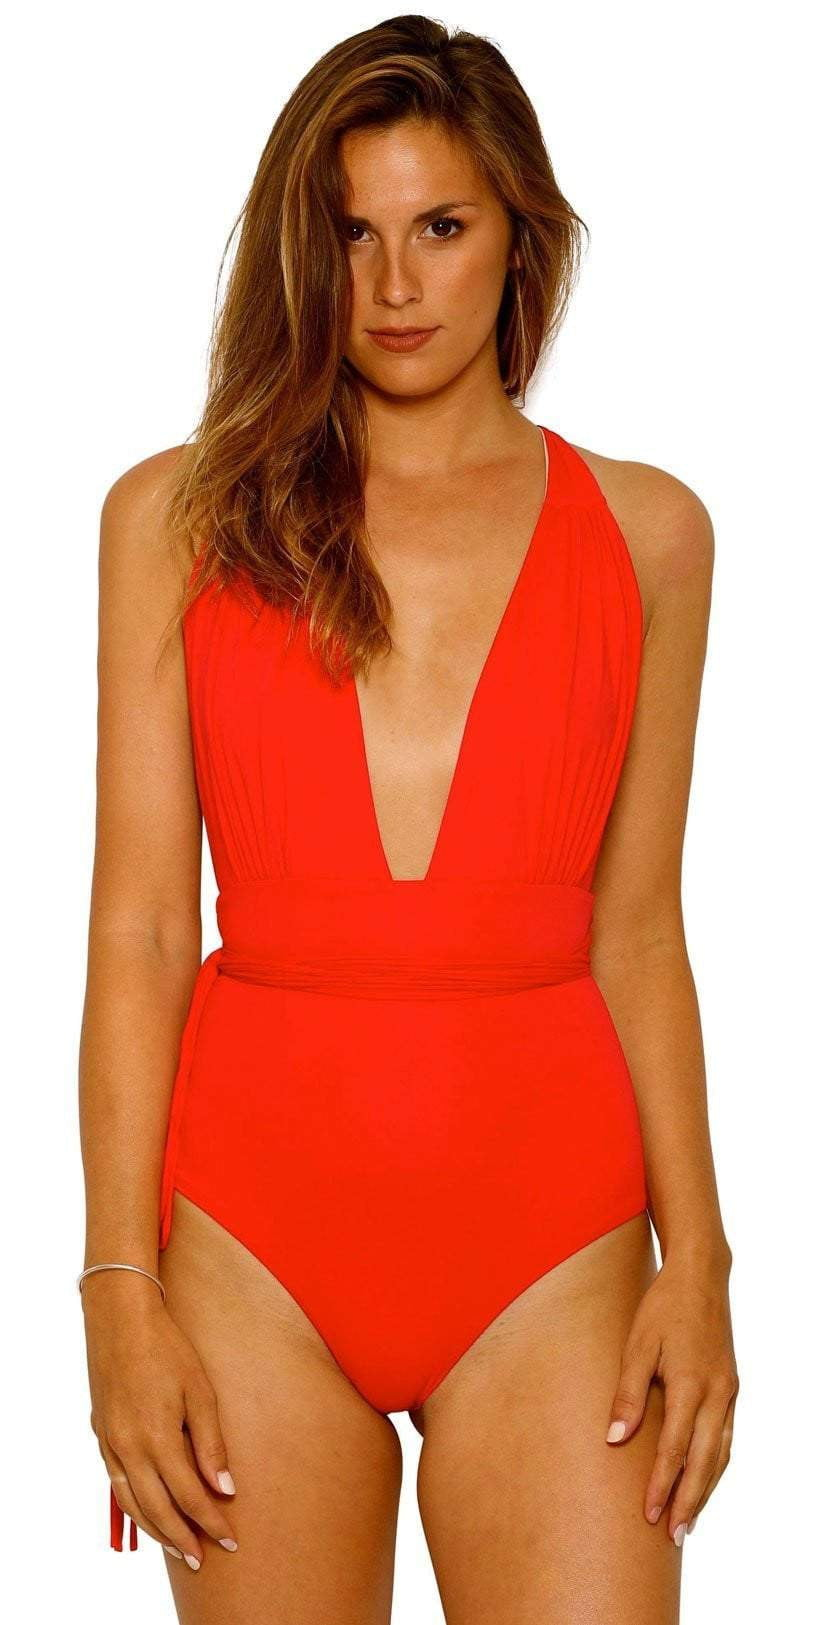 Charmosa Camille Plunge V Neck Reversible One Piece Swimsuit CHMMBR001: